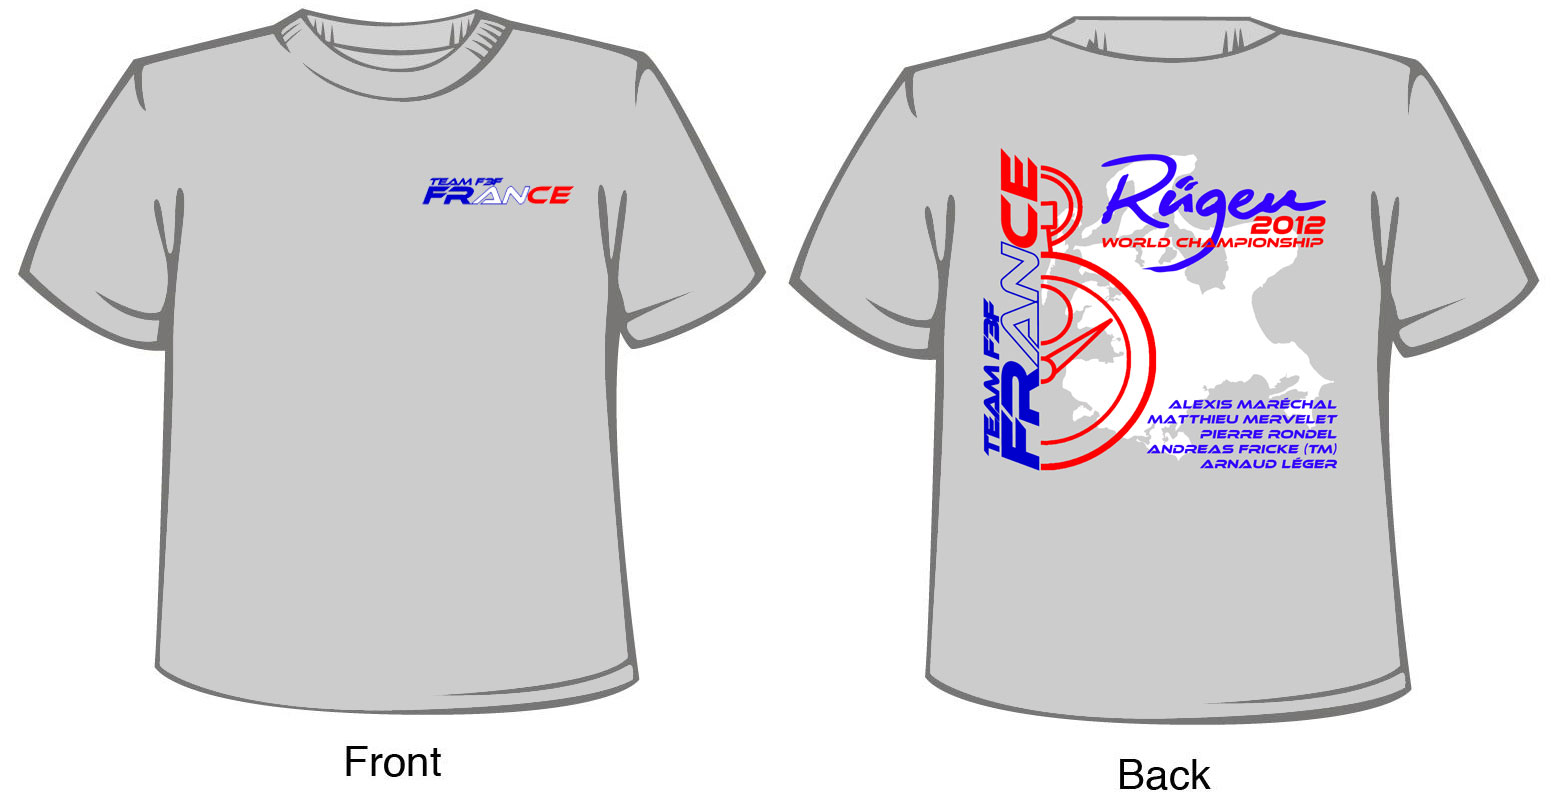 Planet Soaring Team France F3f T Shirt Pre Order Is Now